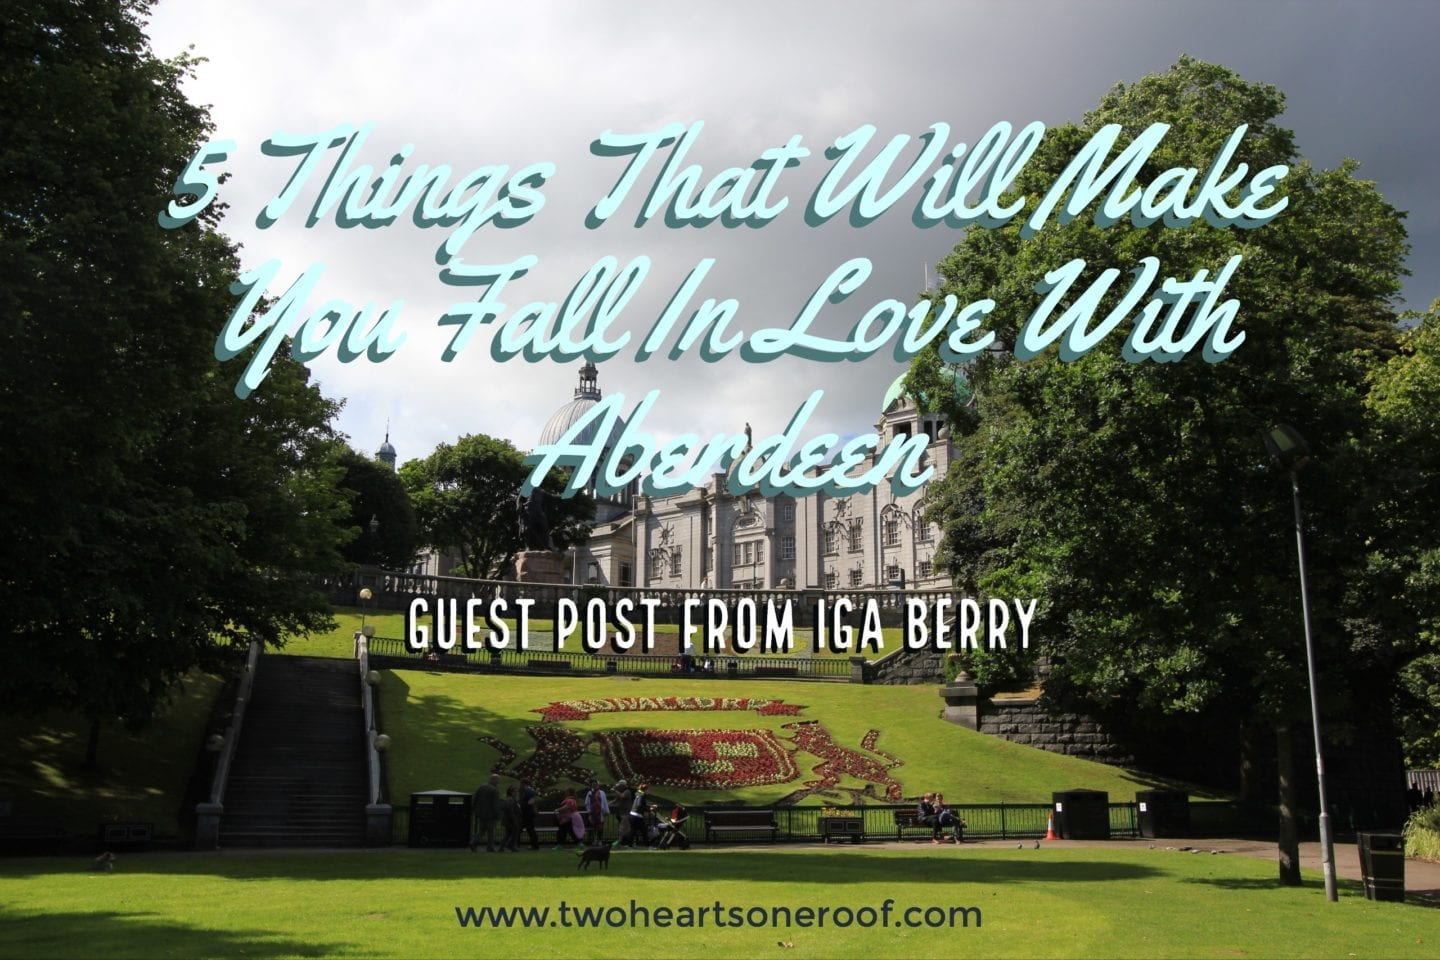 Guest Post from Iga Berry – 5 Things That Will Make You Fall In Love With Aberdeen